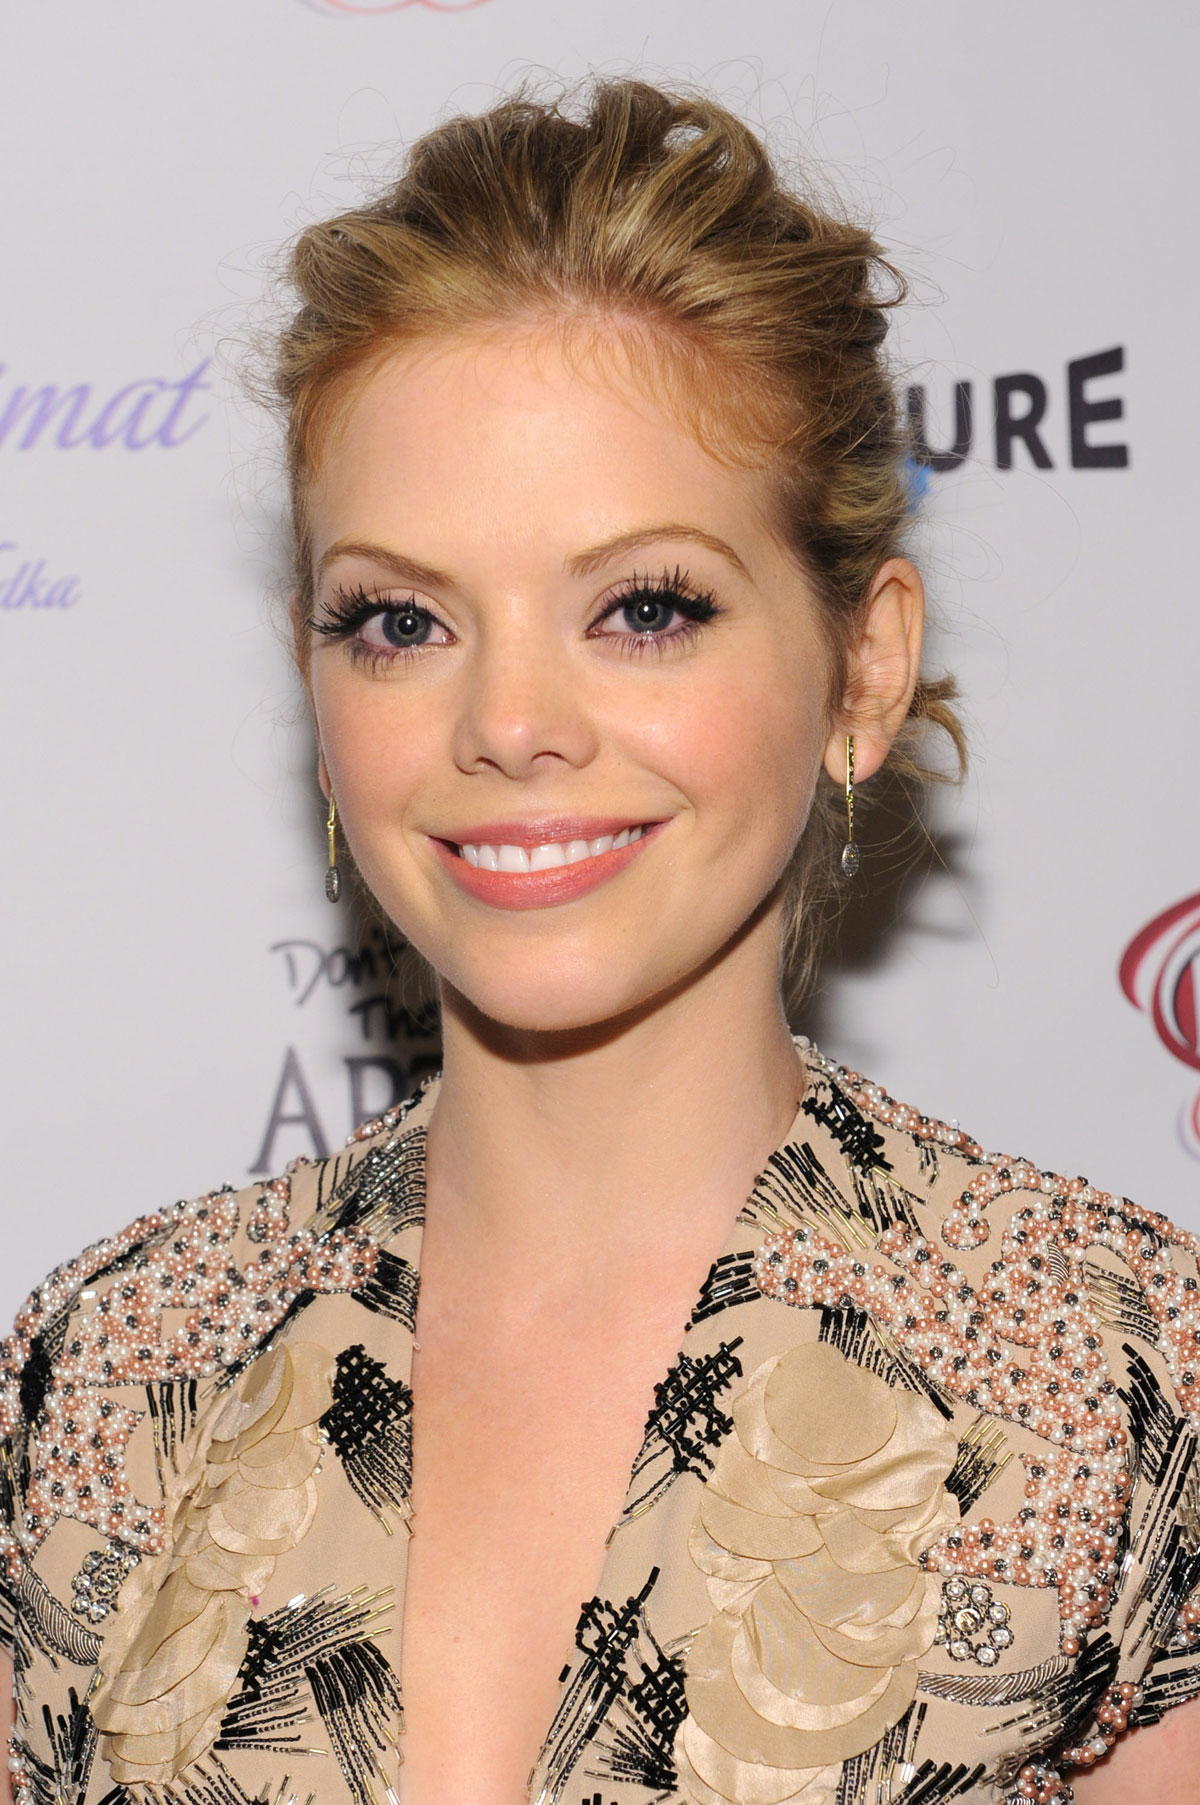 dreama walker twitterdreama walker wallpaper, dreama walker height, dreama walker insta, dreama walker fan site, dreama walker twitter, dreama walker facebook, dreama walker, dreama walker instagram, dreama walker gossip girl